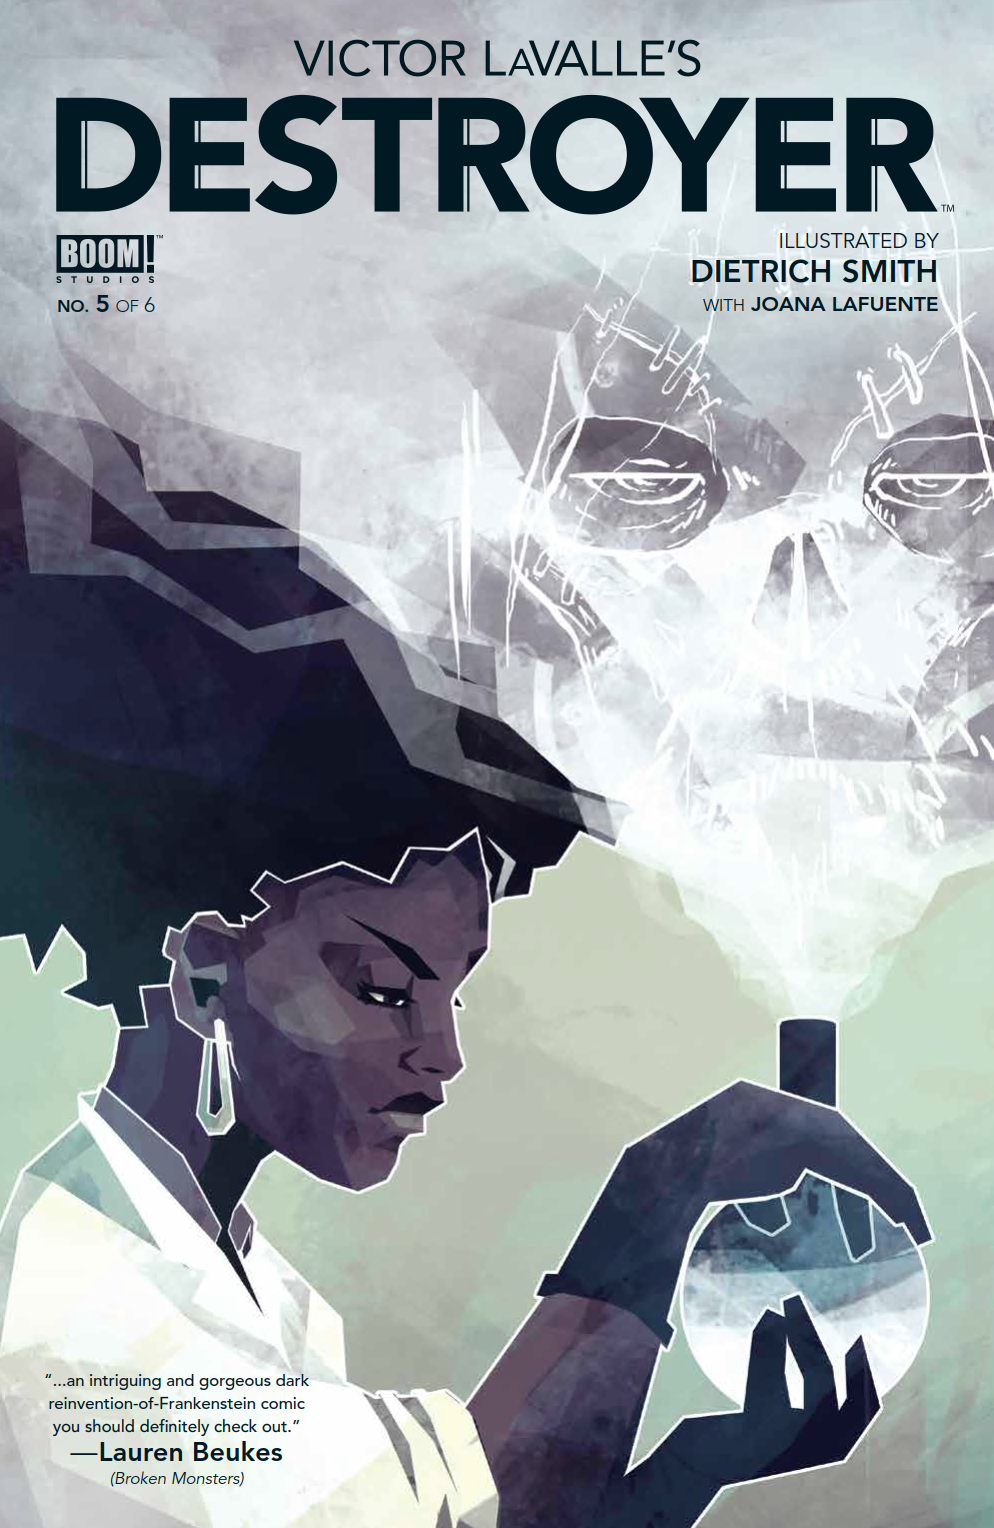 VICTOR LAVALLE'S DESTROYER #5 (OF 6)